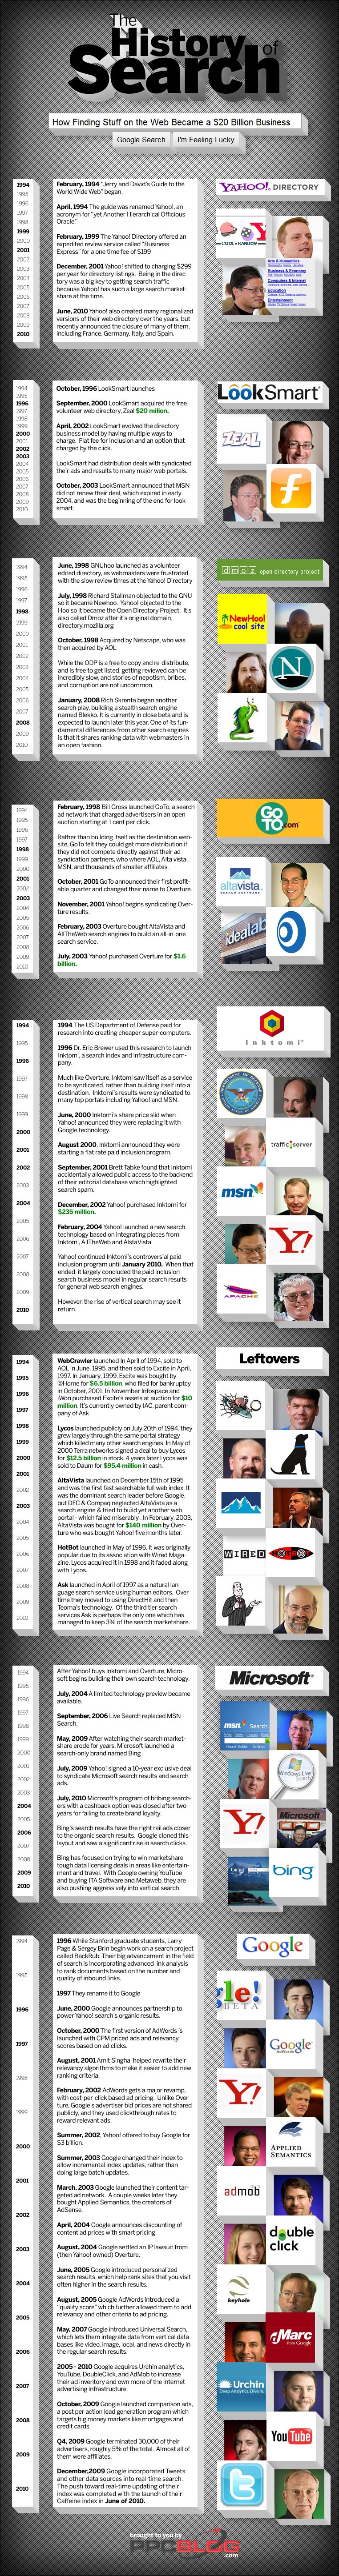 History of Search Engines.